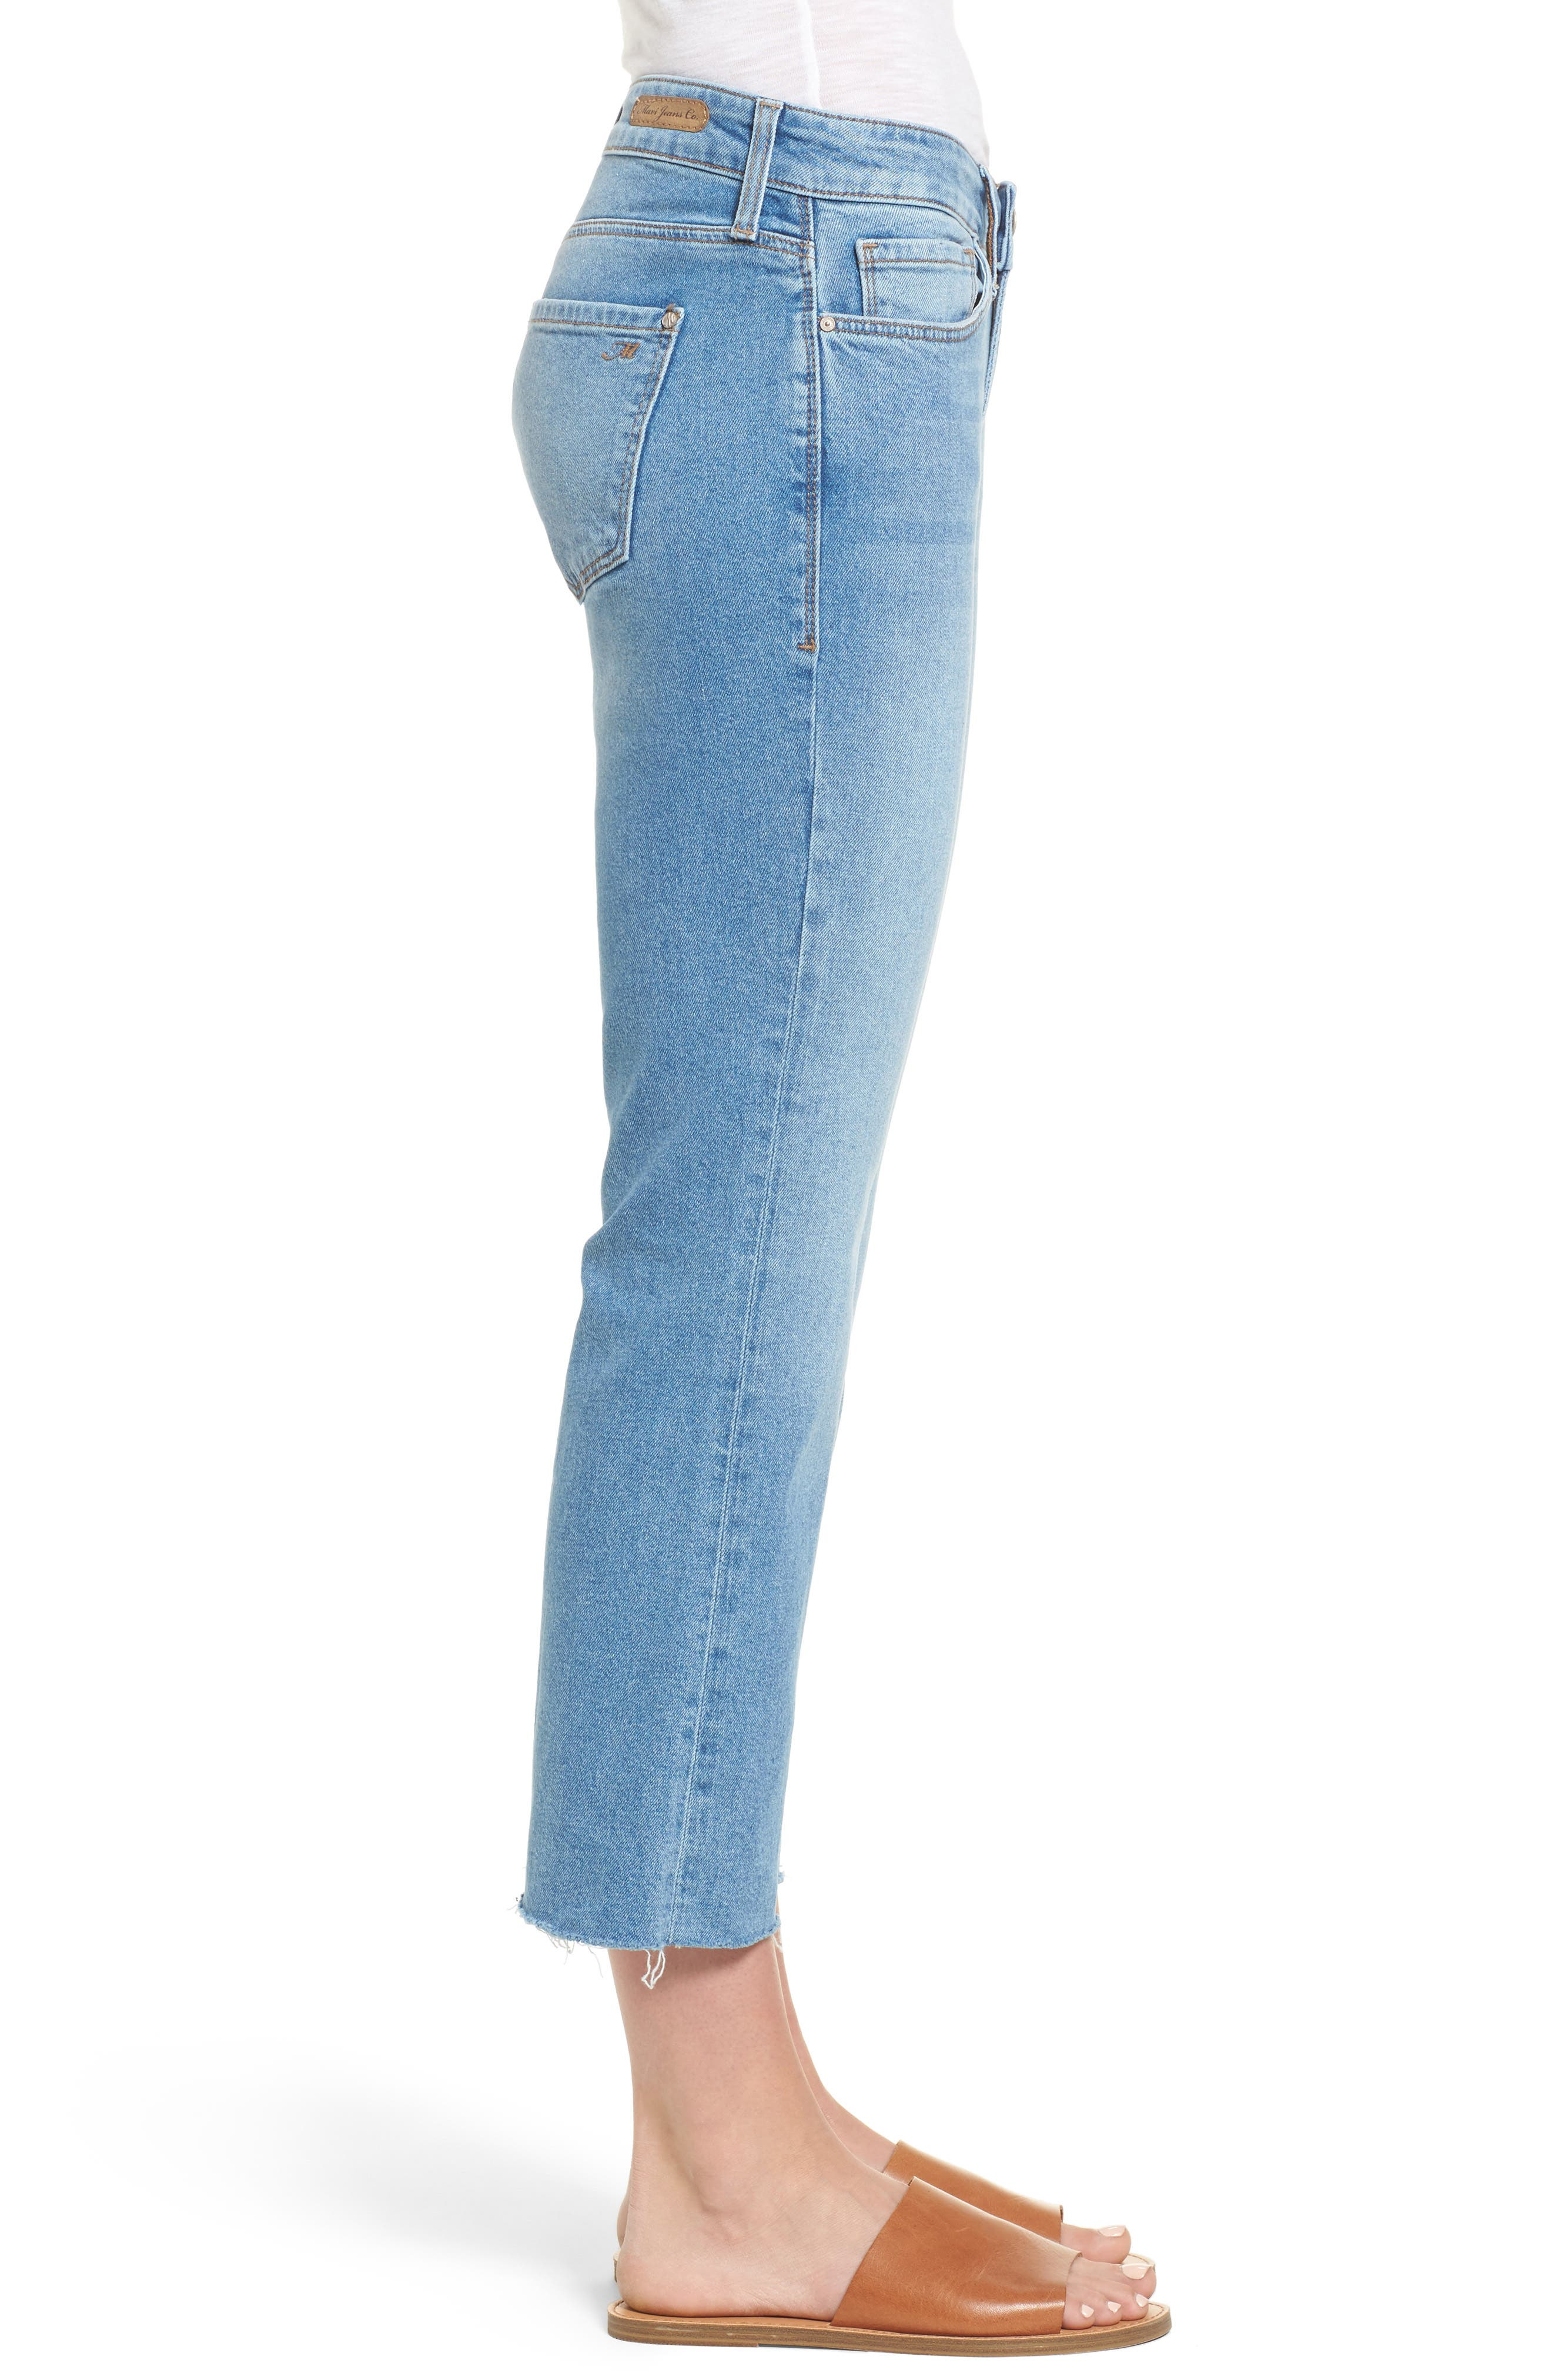 Anika Stretch Crop Jeans,                             Alternate thumbnail 3, color,                             420